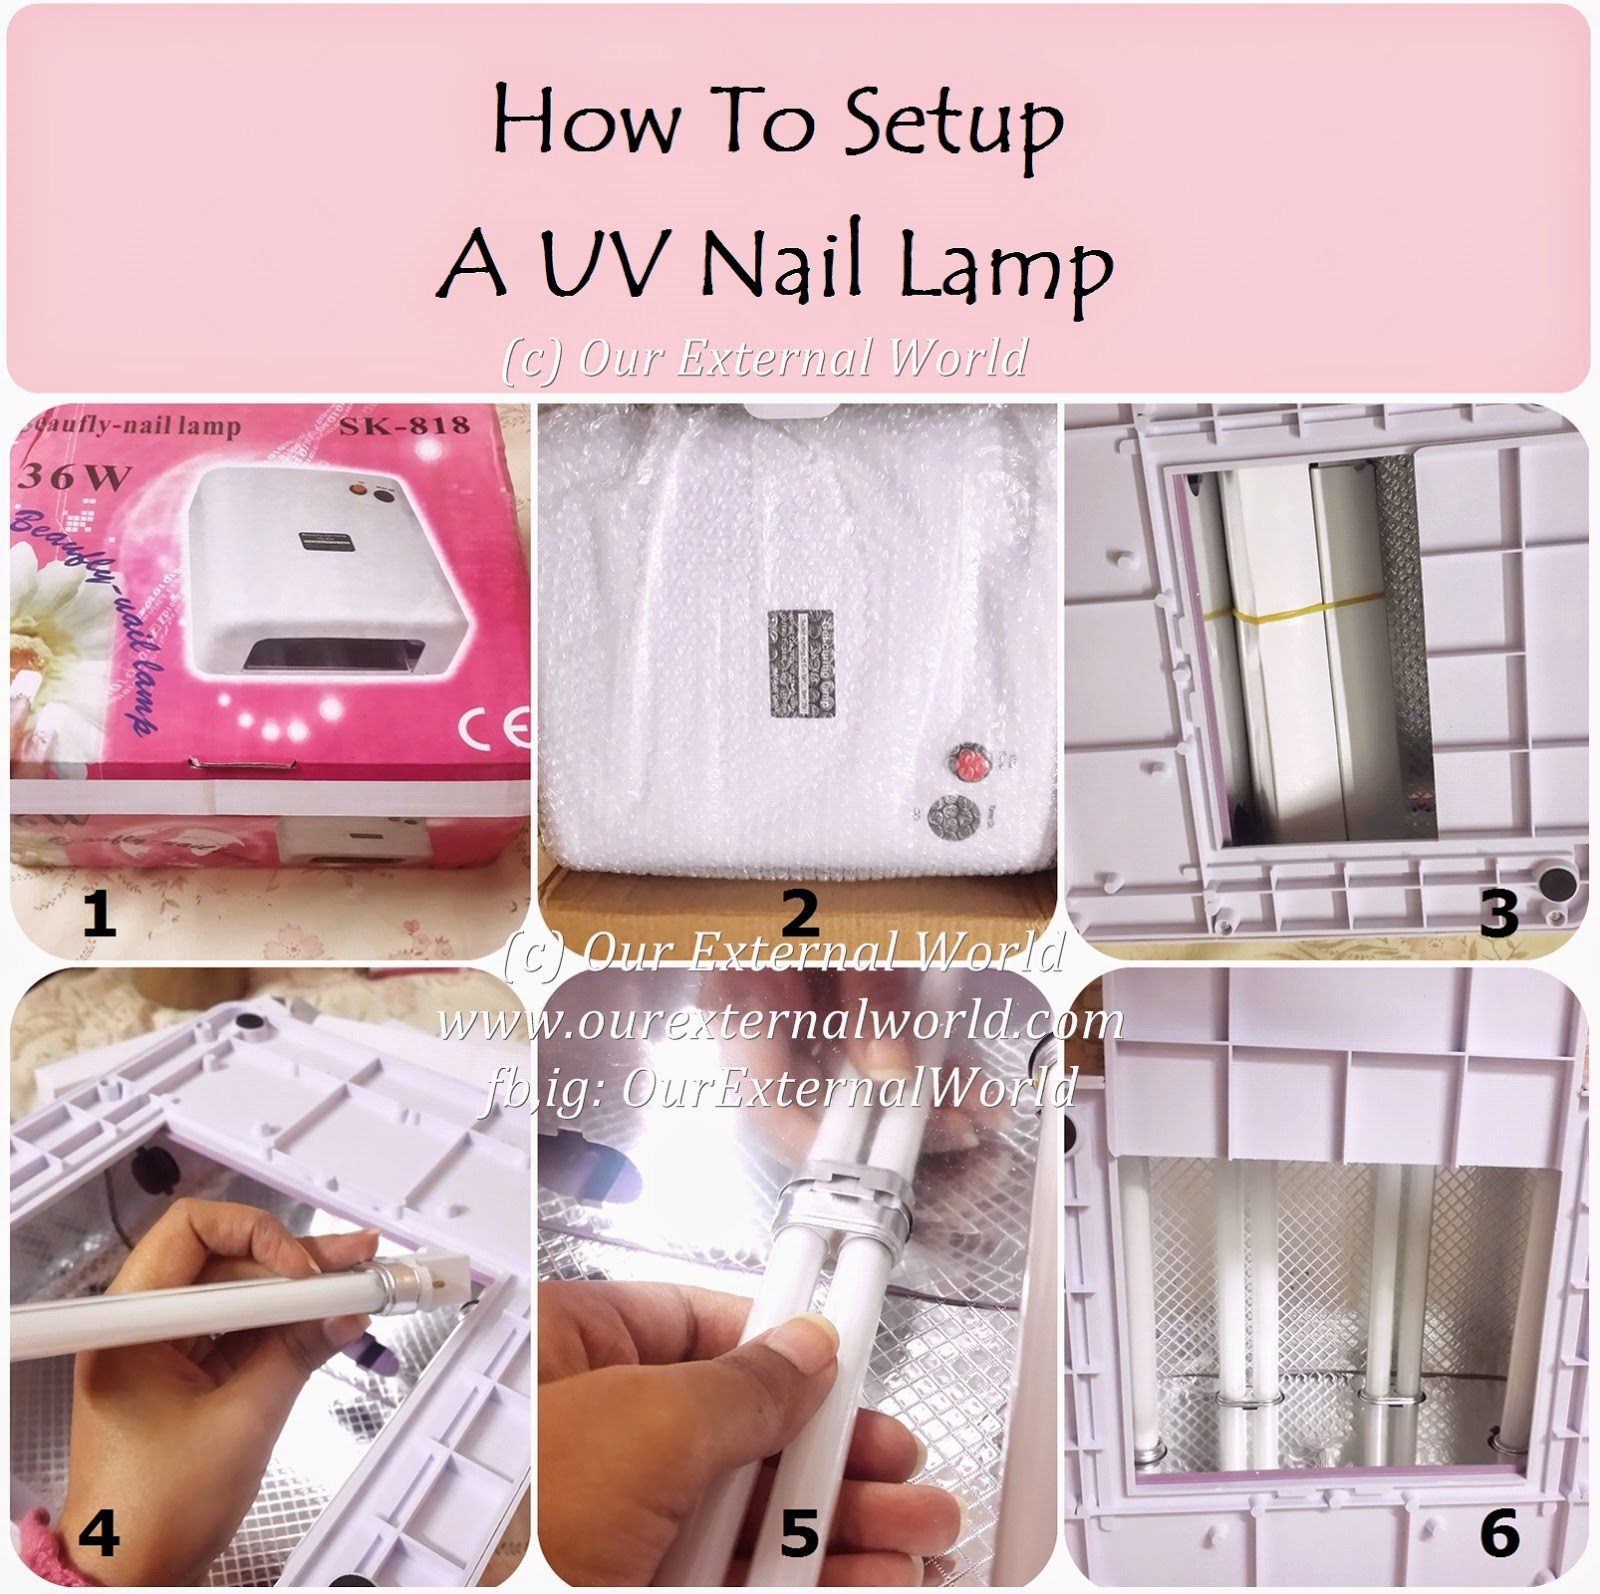 How To Setup A UV Nail Lamp For Gel Manicure